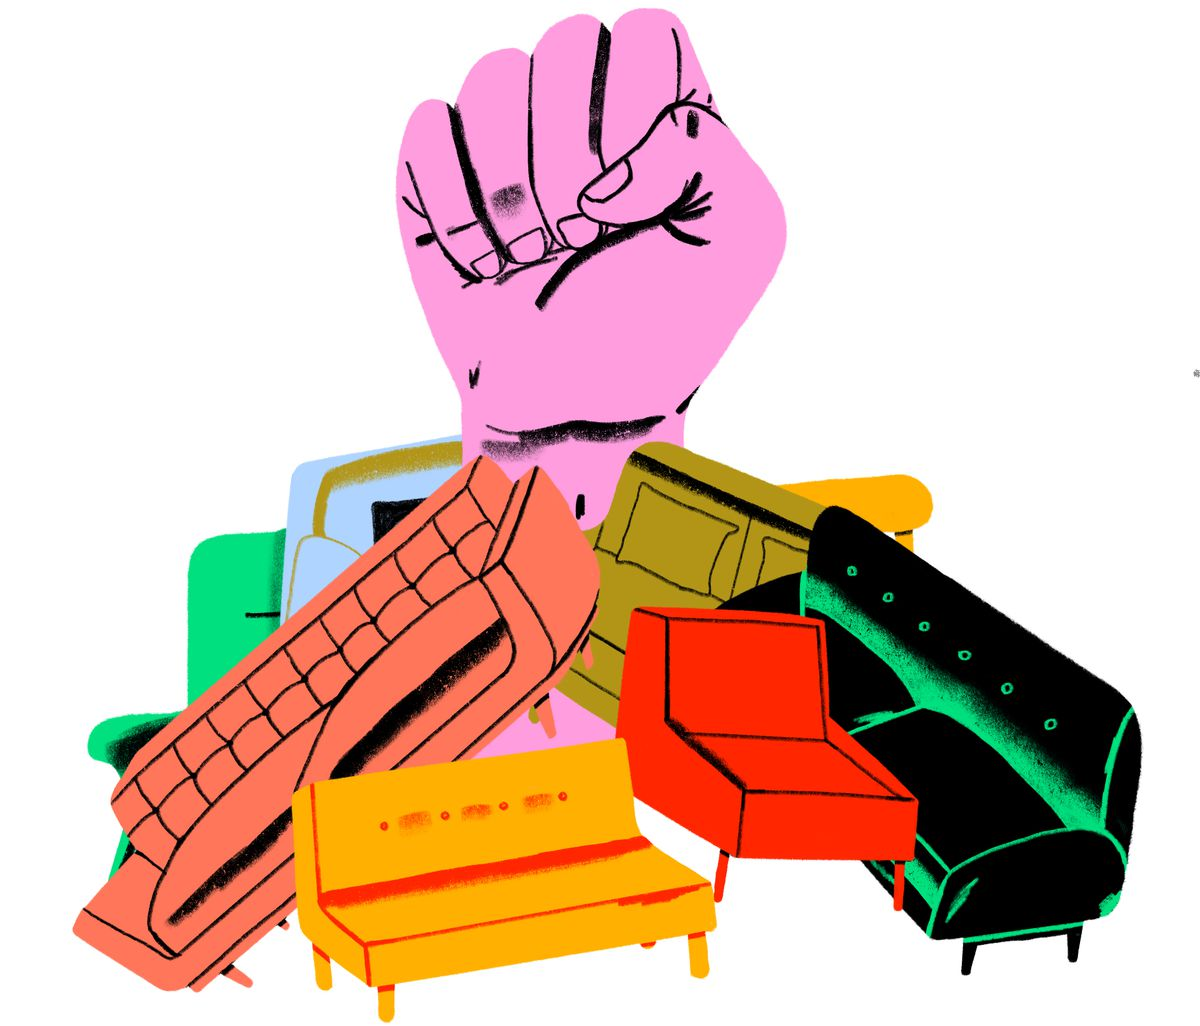 A giant hot pink fist punches through a pile of colorful sofas. Illustration.